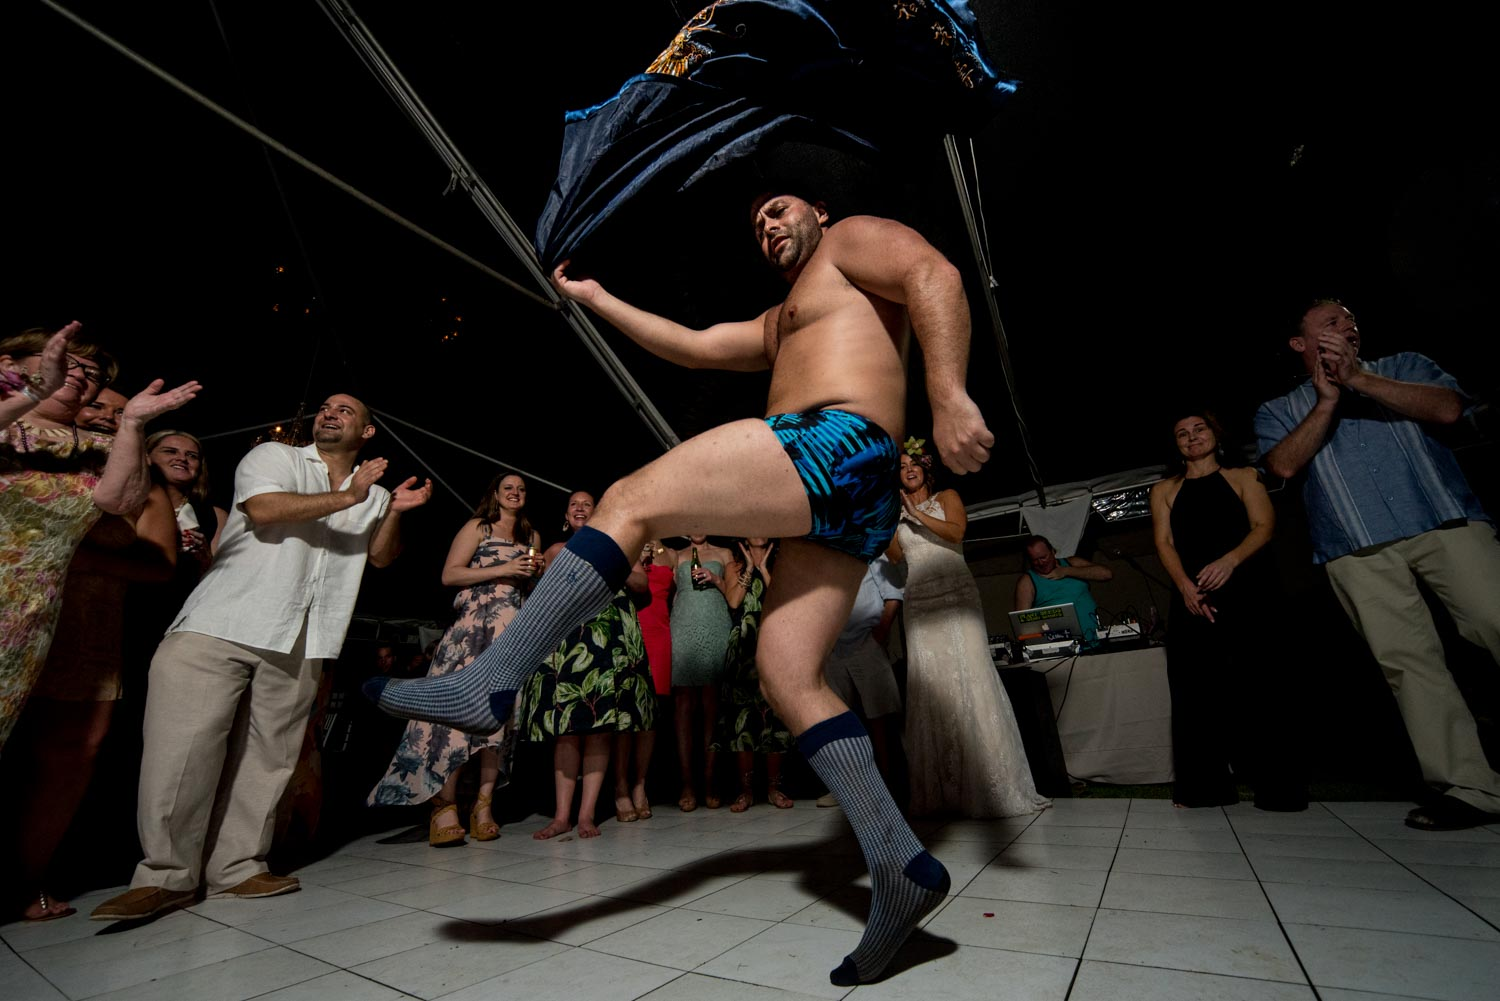 The best man dancing in his underwear spinning a robe surrounded by cheering guests during the wedding reception.